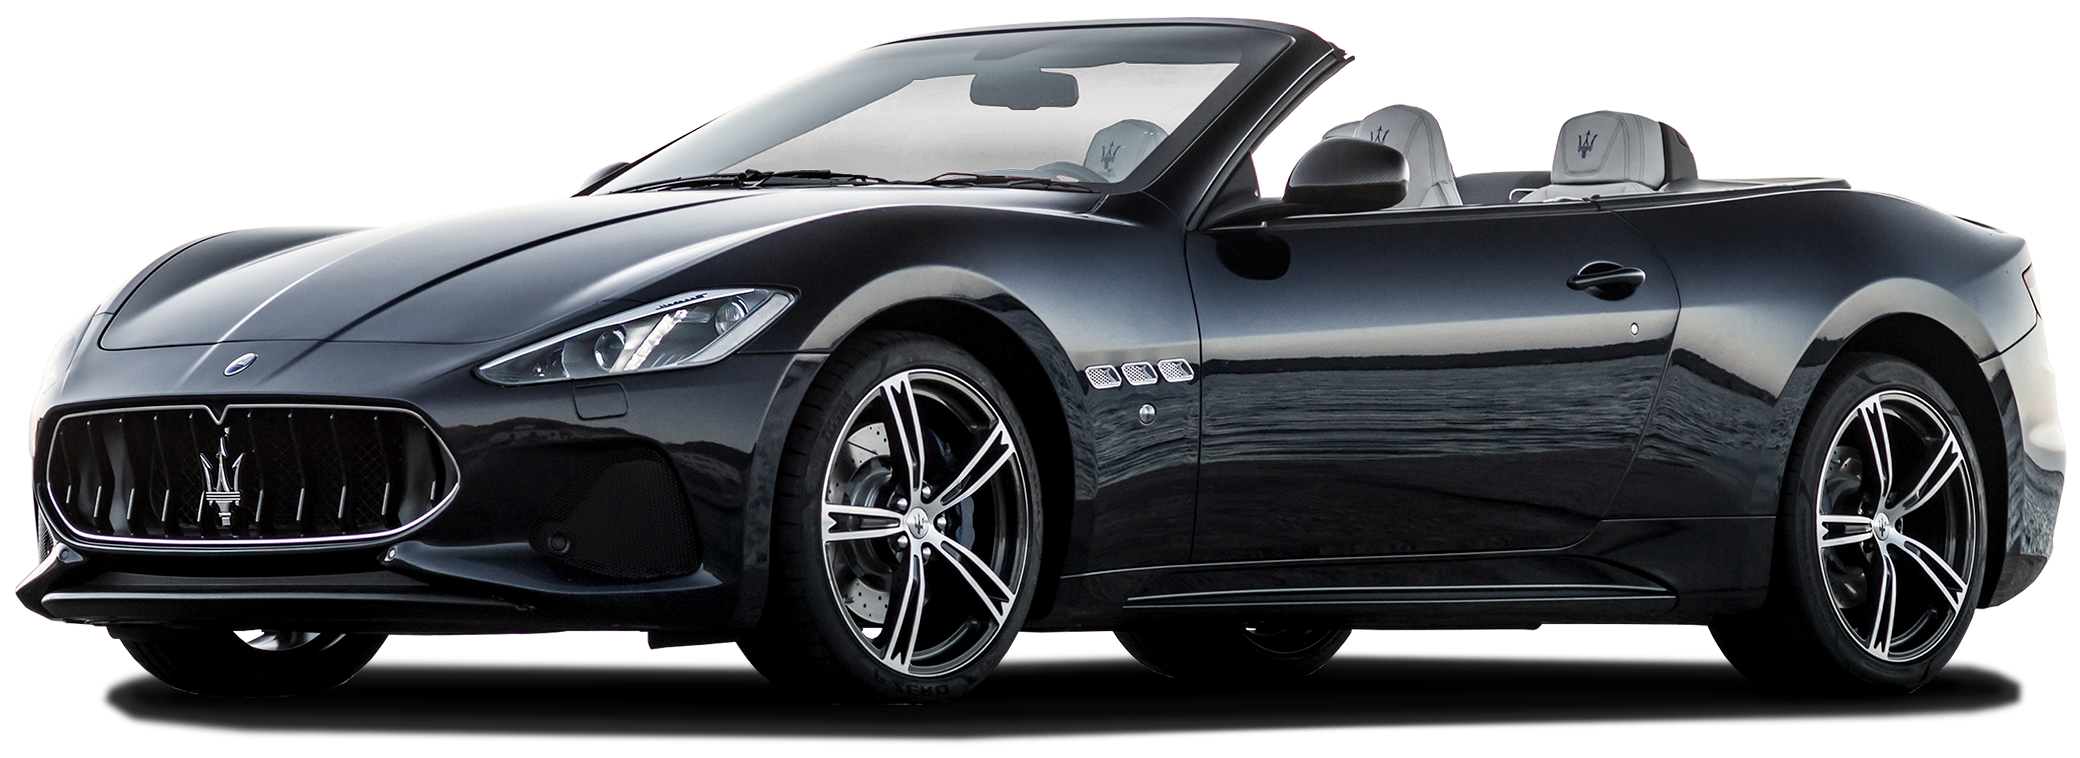 2019 Maserati Granturismo Incentives Specials Offers In